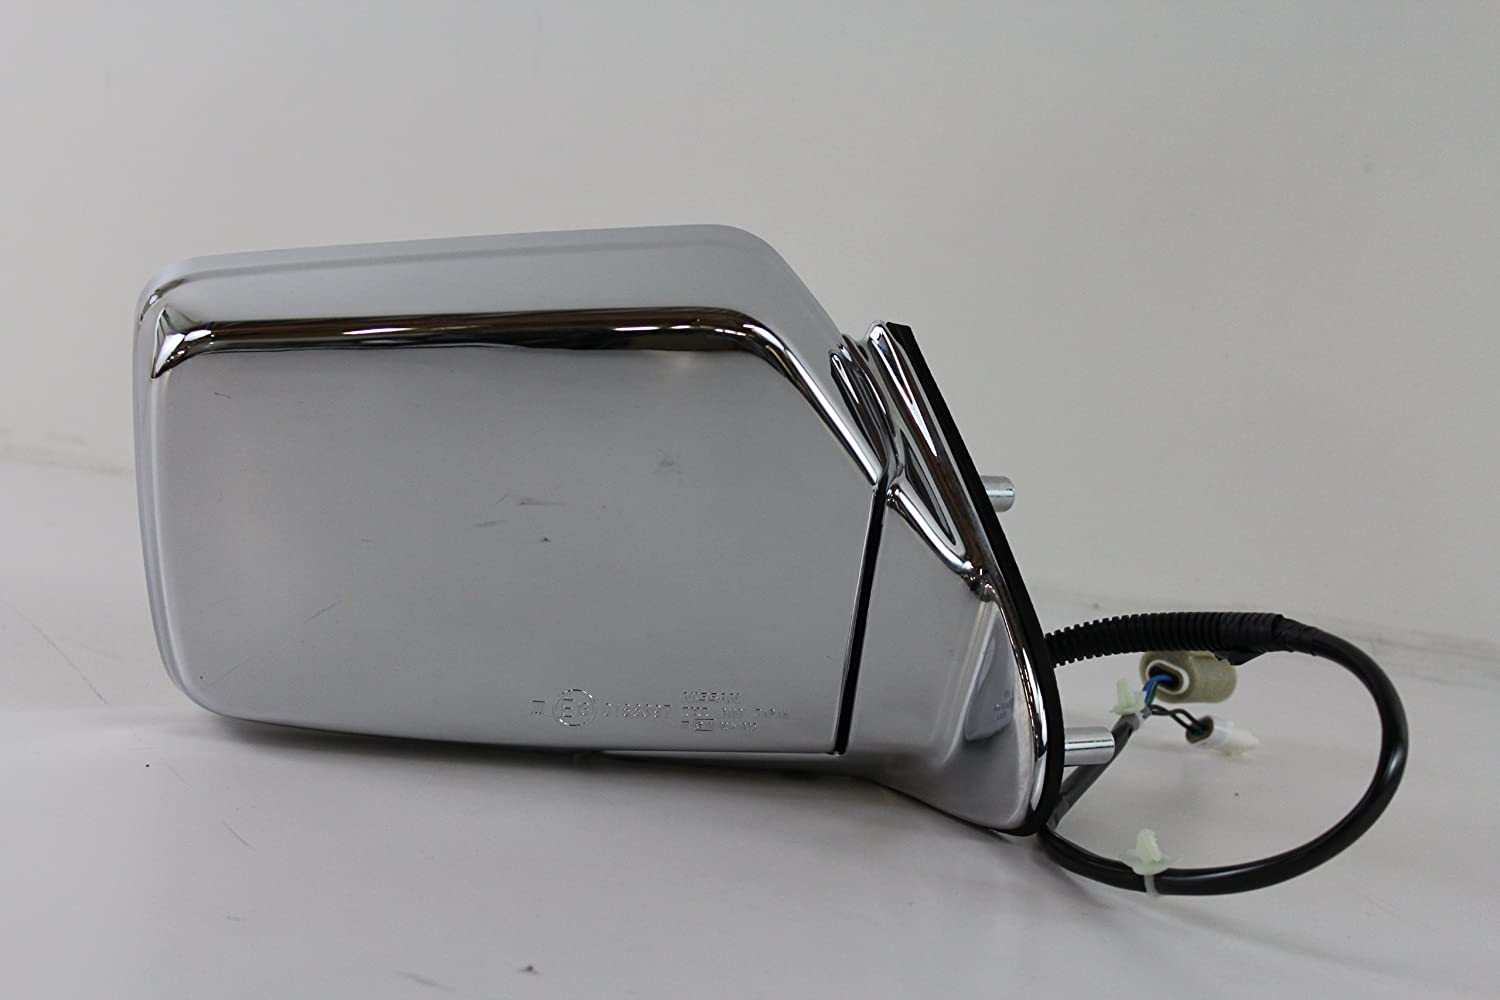 Genuine Nissan Parts 96301-57G10 Passenger Side Mirror Outside Rear View